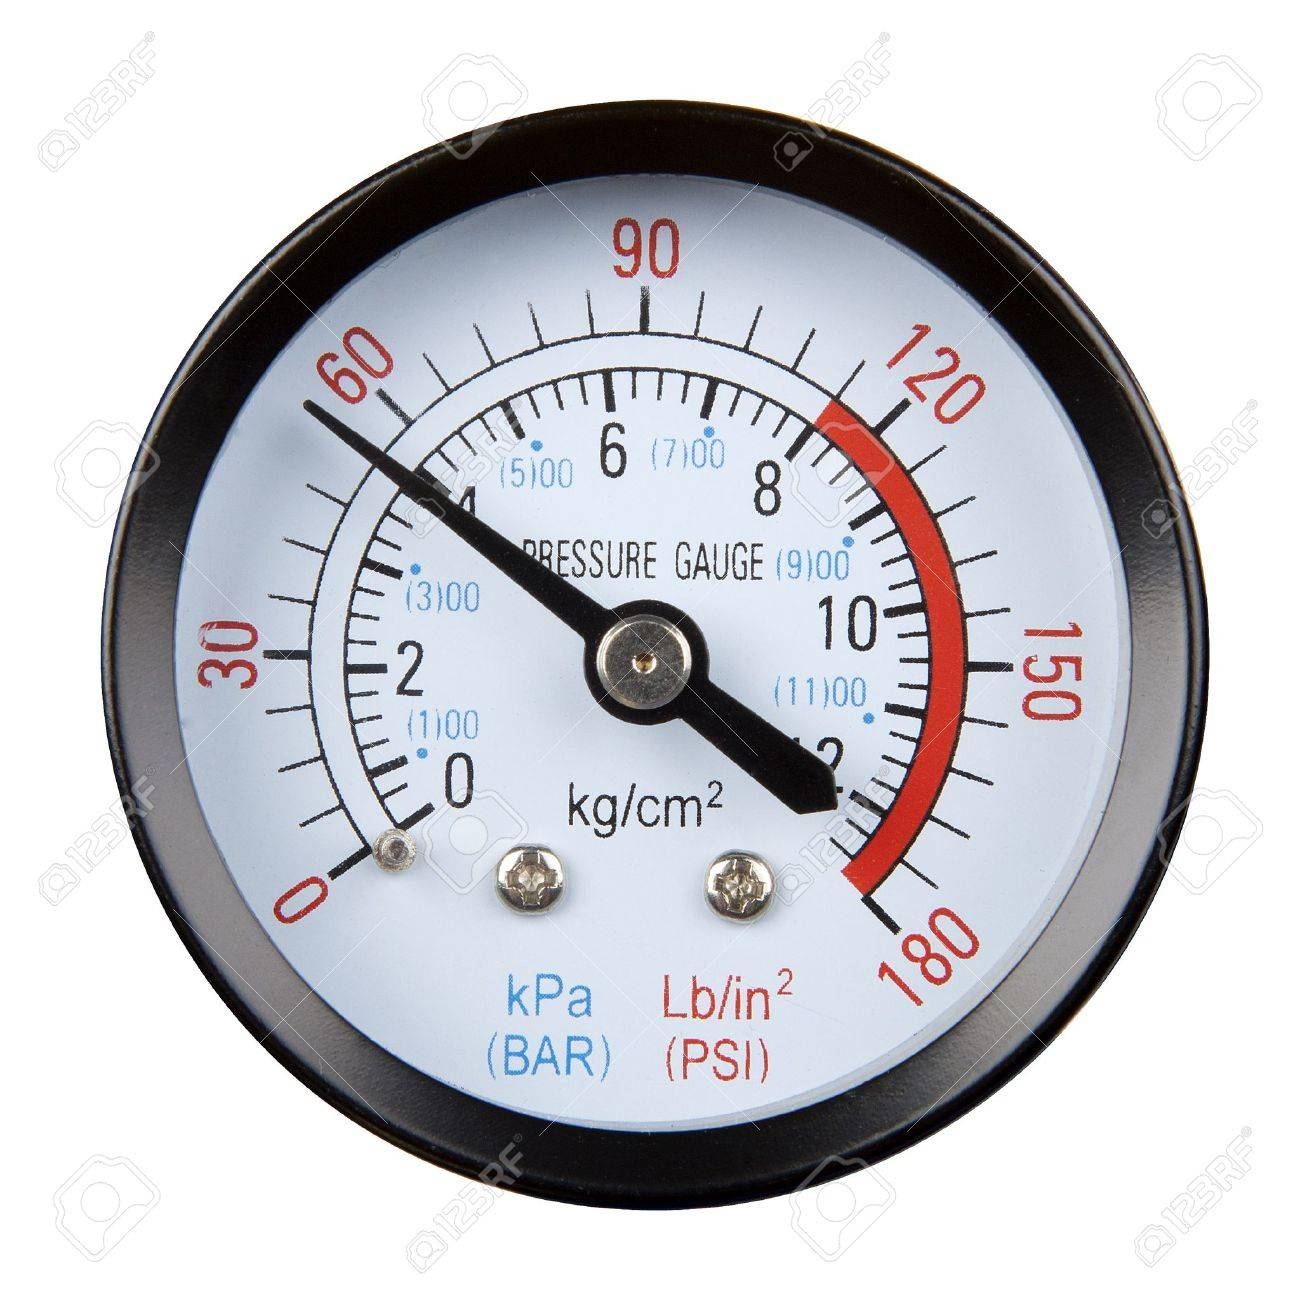 pressure gauge isolated on a white background - 14197138